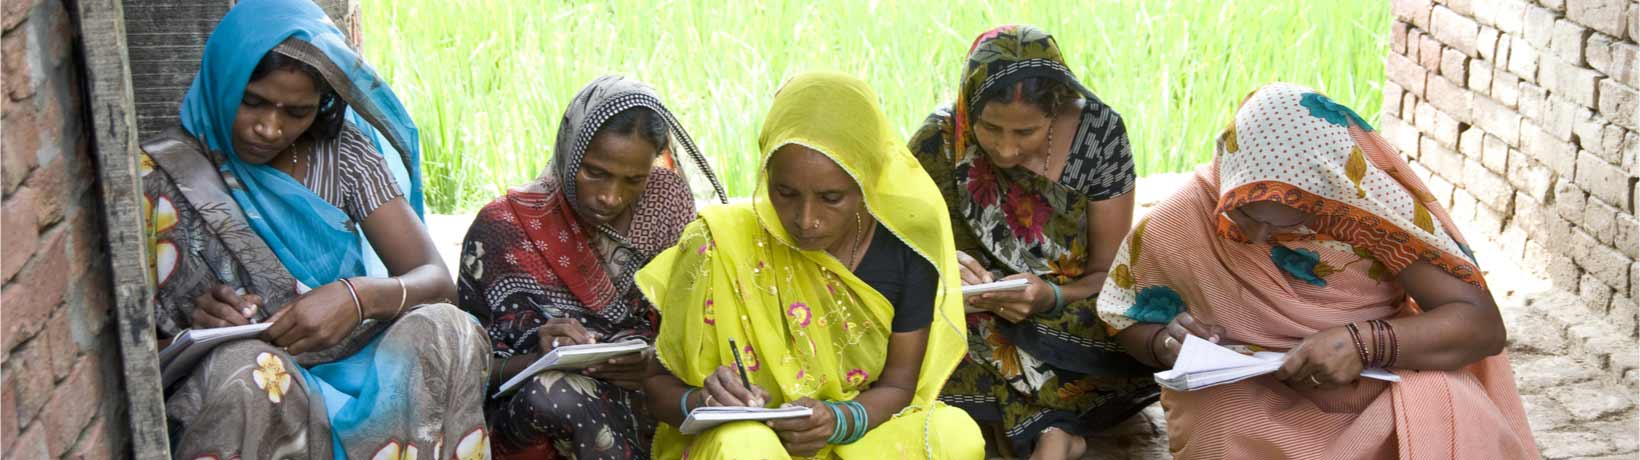 women reading in india